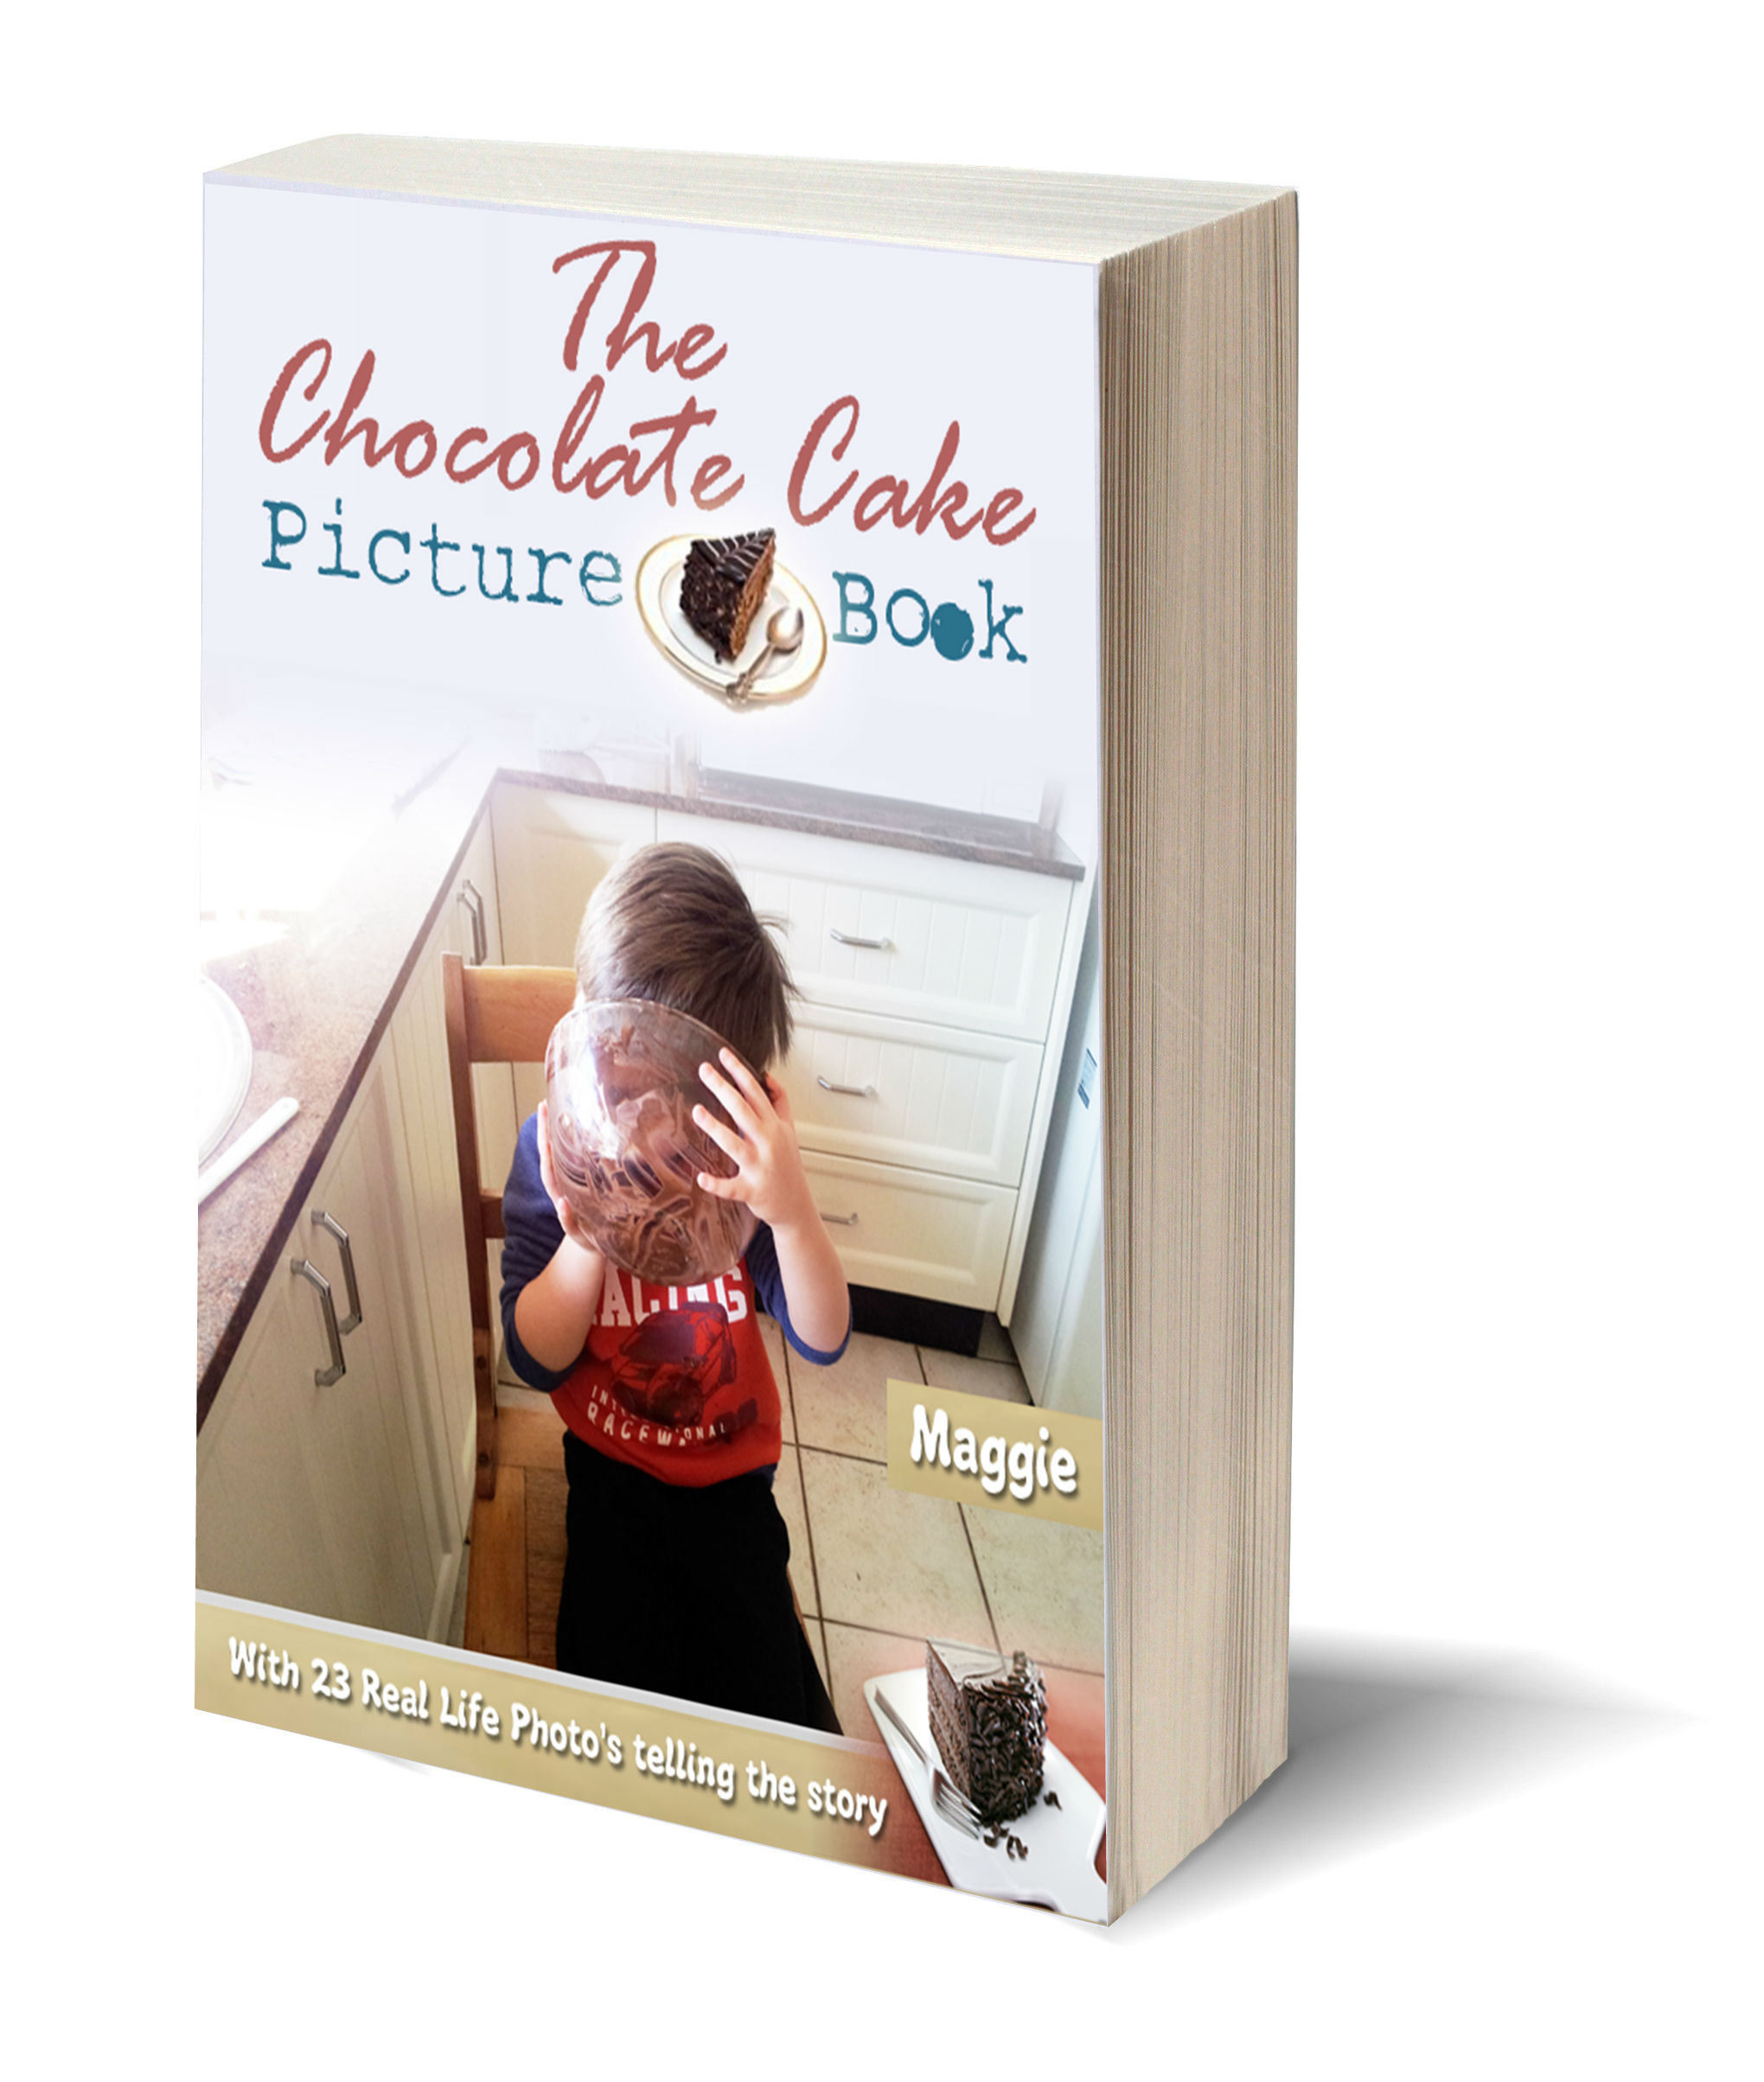 The chocolate cake picture book 3D-Book-Template